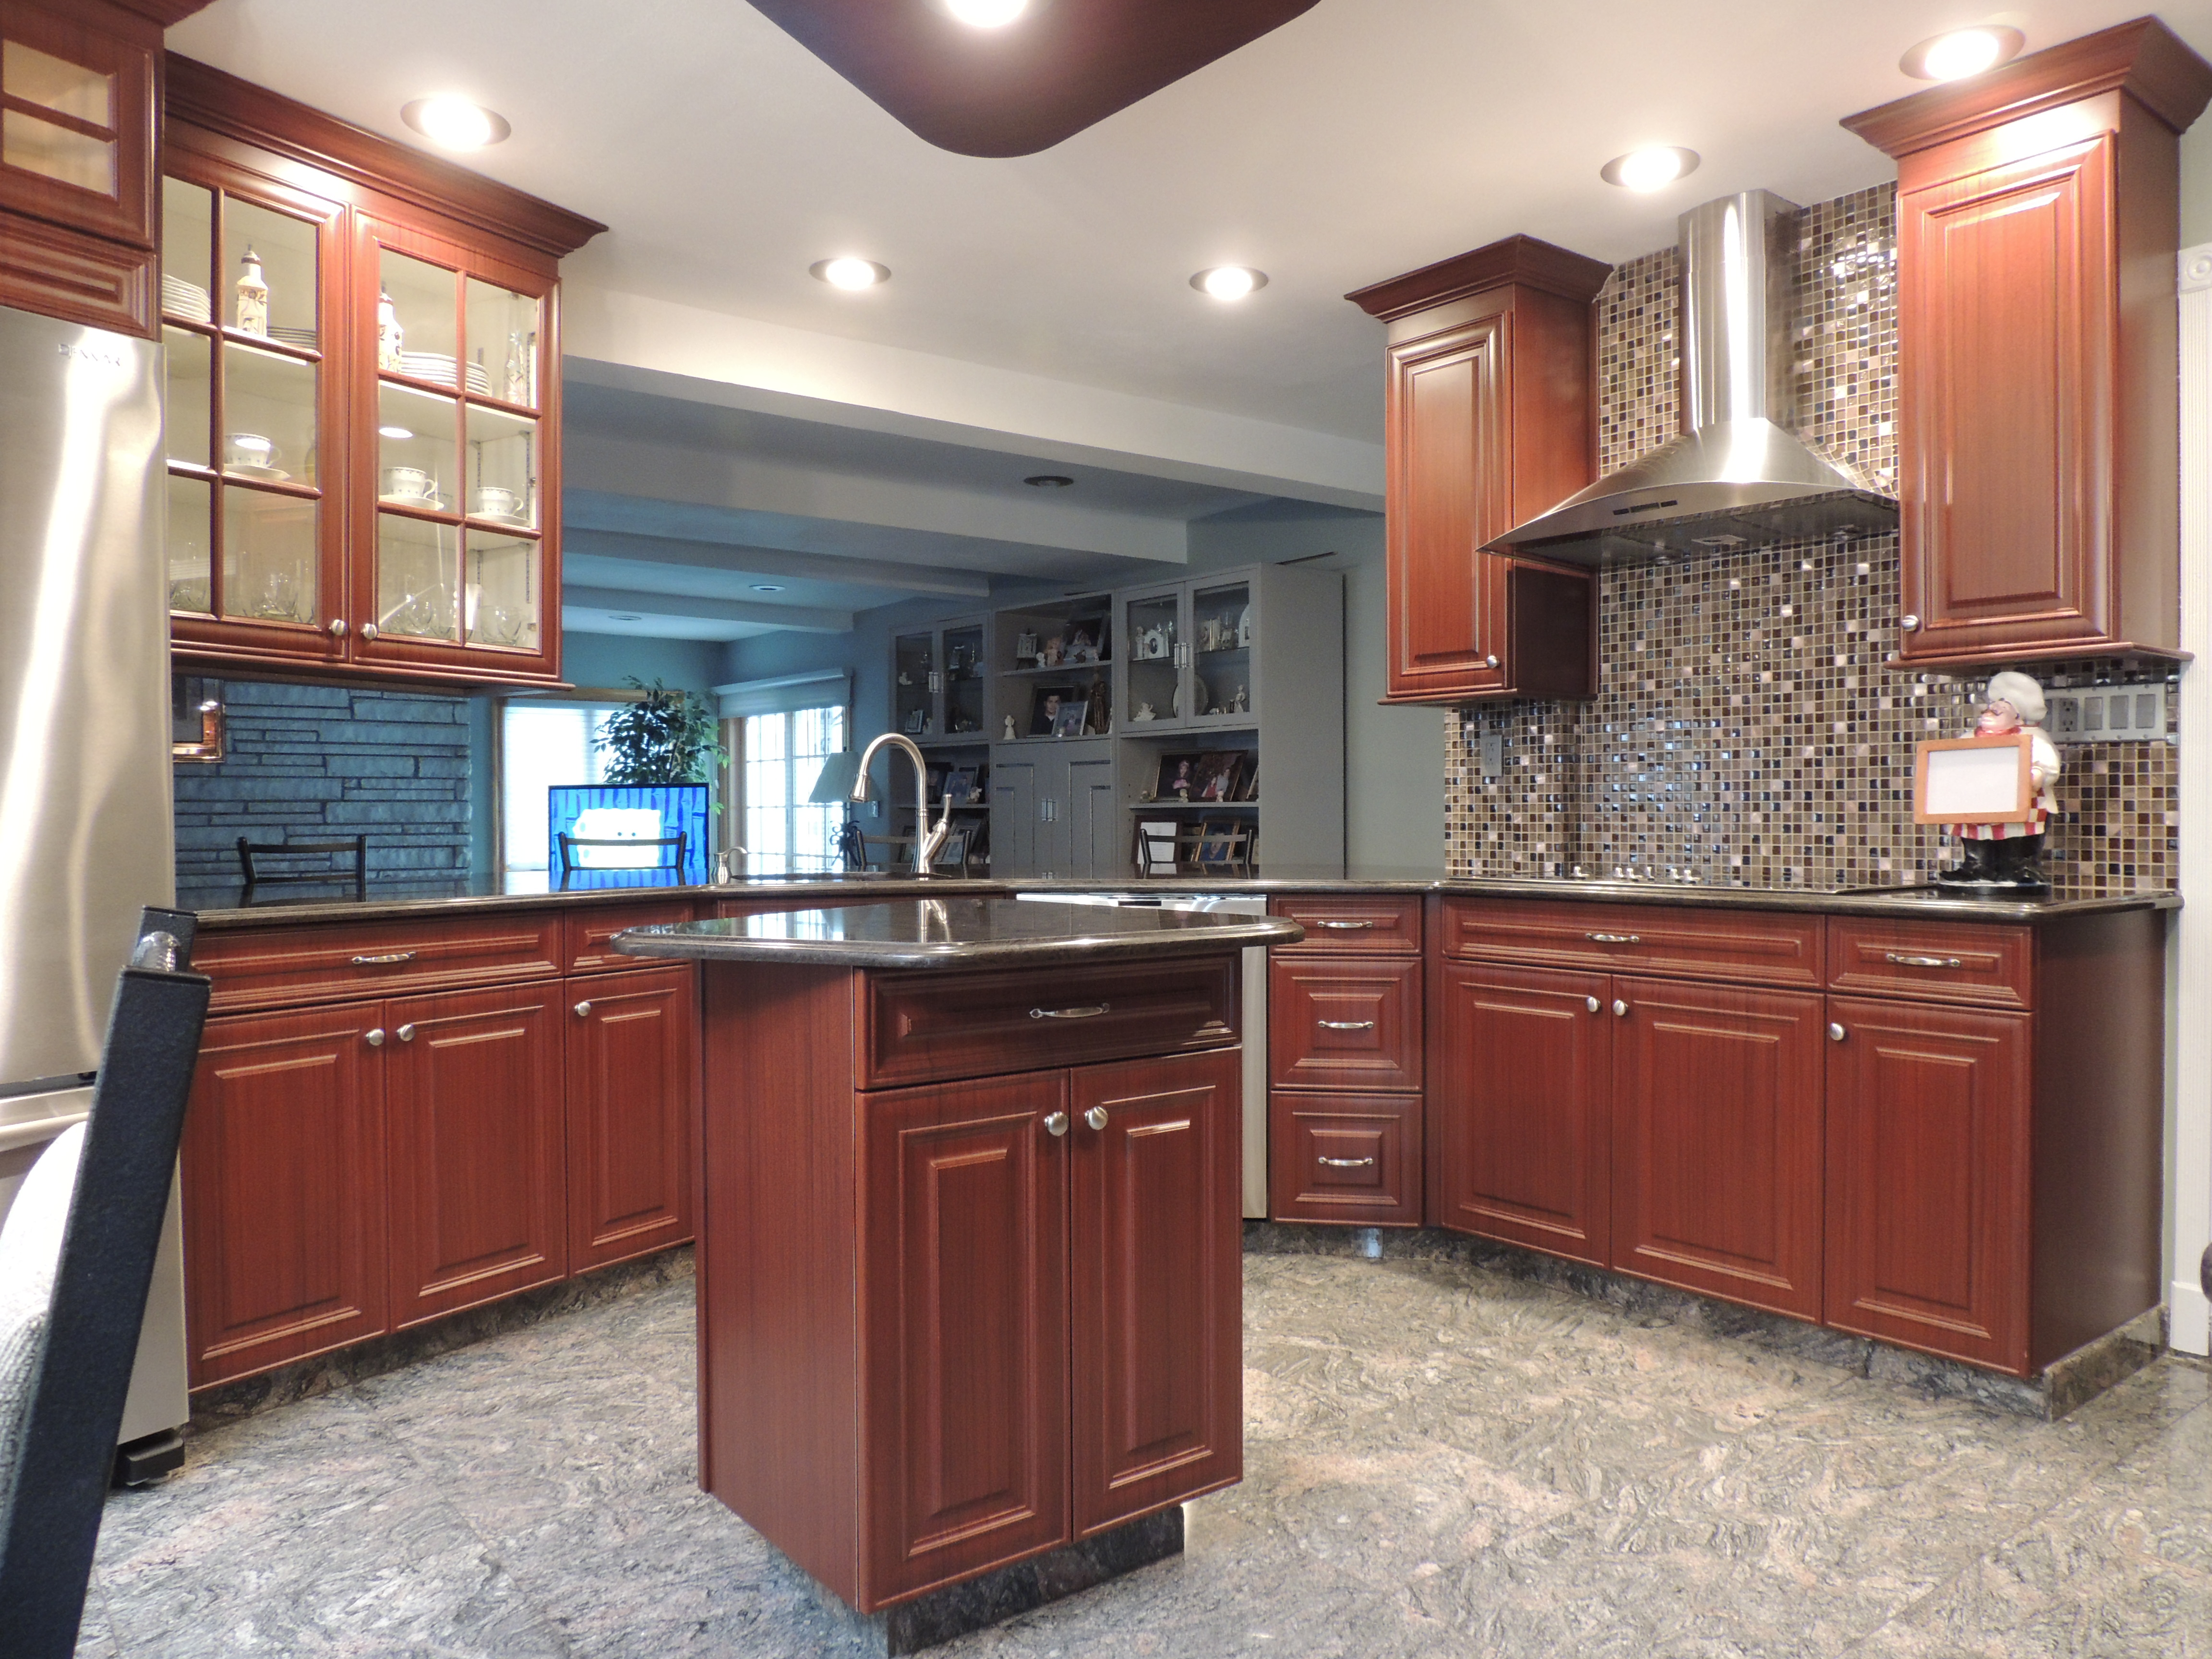 kitchen remodeling ideas new look kitchen refacing ny. Black Bedroom Furniture Sets. Home Design Ideas